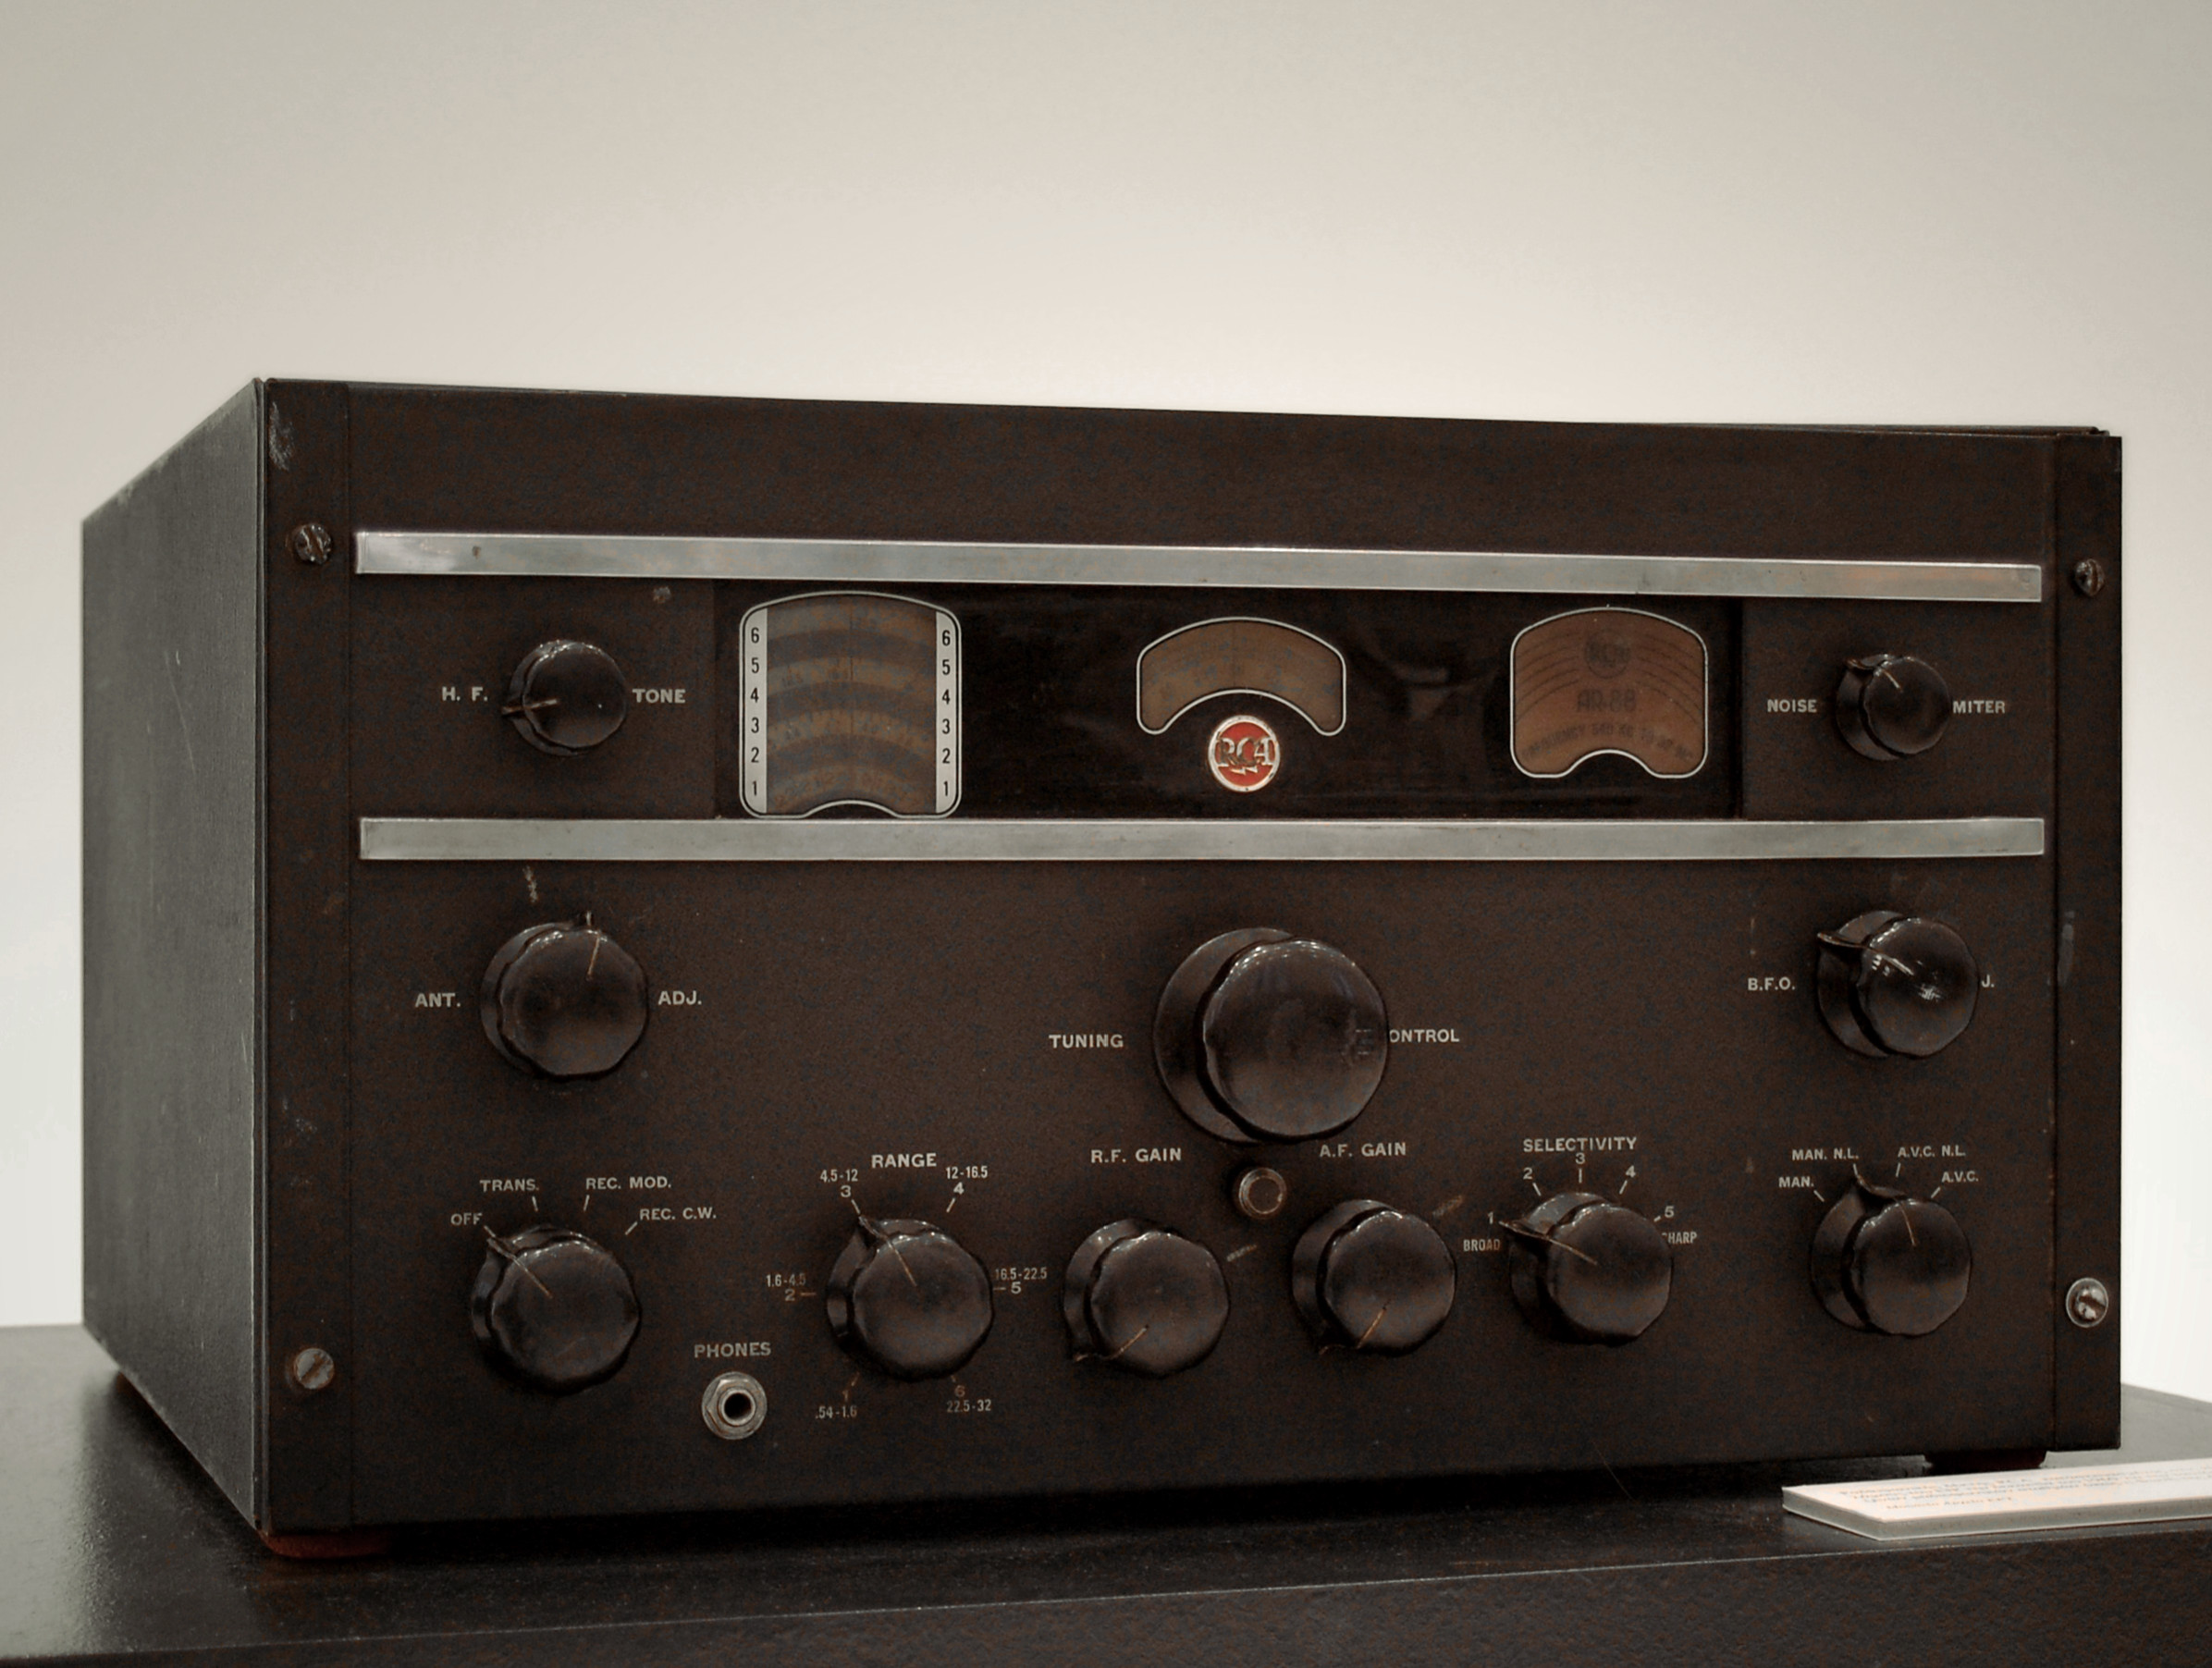 Louis Barron Pioneer Of Tube Audio Effects Effectrode Sound Circuit Generator The Old West Sounds In Front Bebe Is What Appears To Be An Item Rackmount Rca Equipment Small Rackthe Knobs Are Manufacture Rack Looks Like It Might Contain